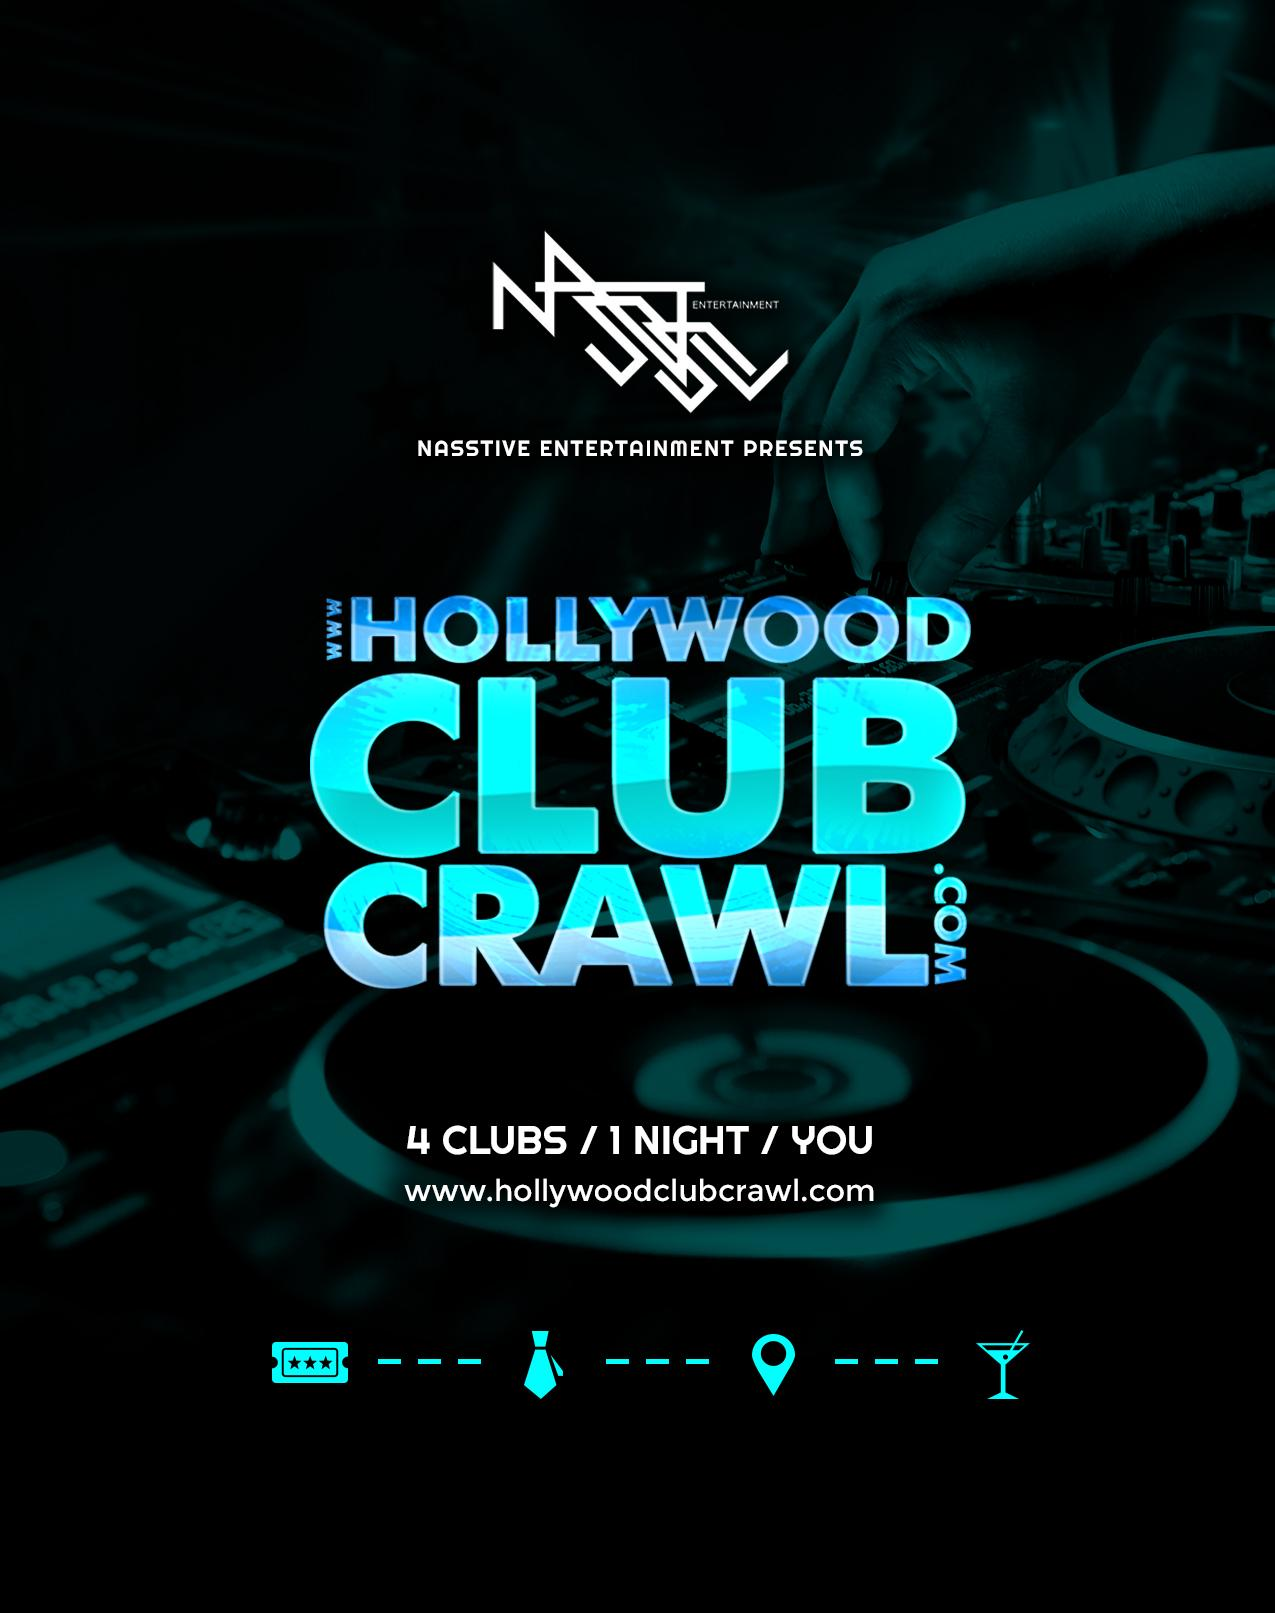 Hollywood Club Crawl - Party at the best LA nightclubs and bars. Hollywood Club Crawl - Party at the best LA nightclubs and bars